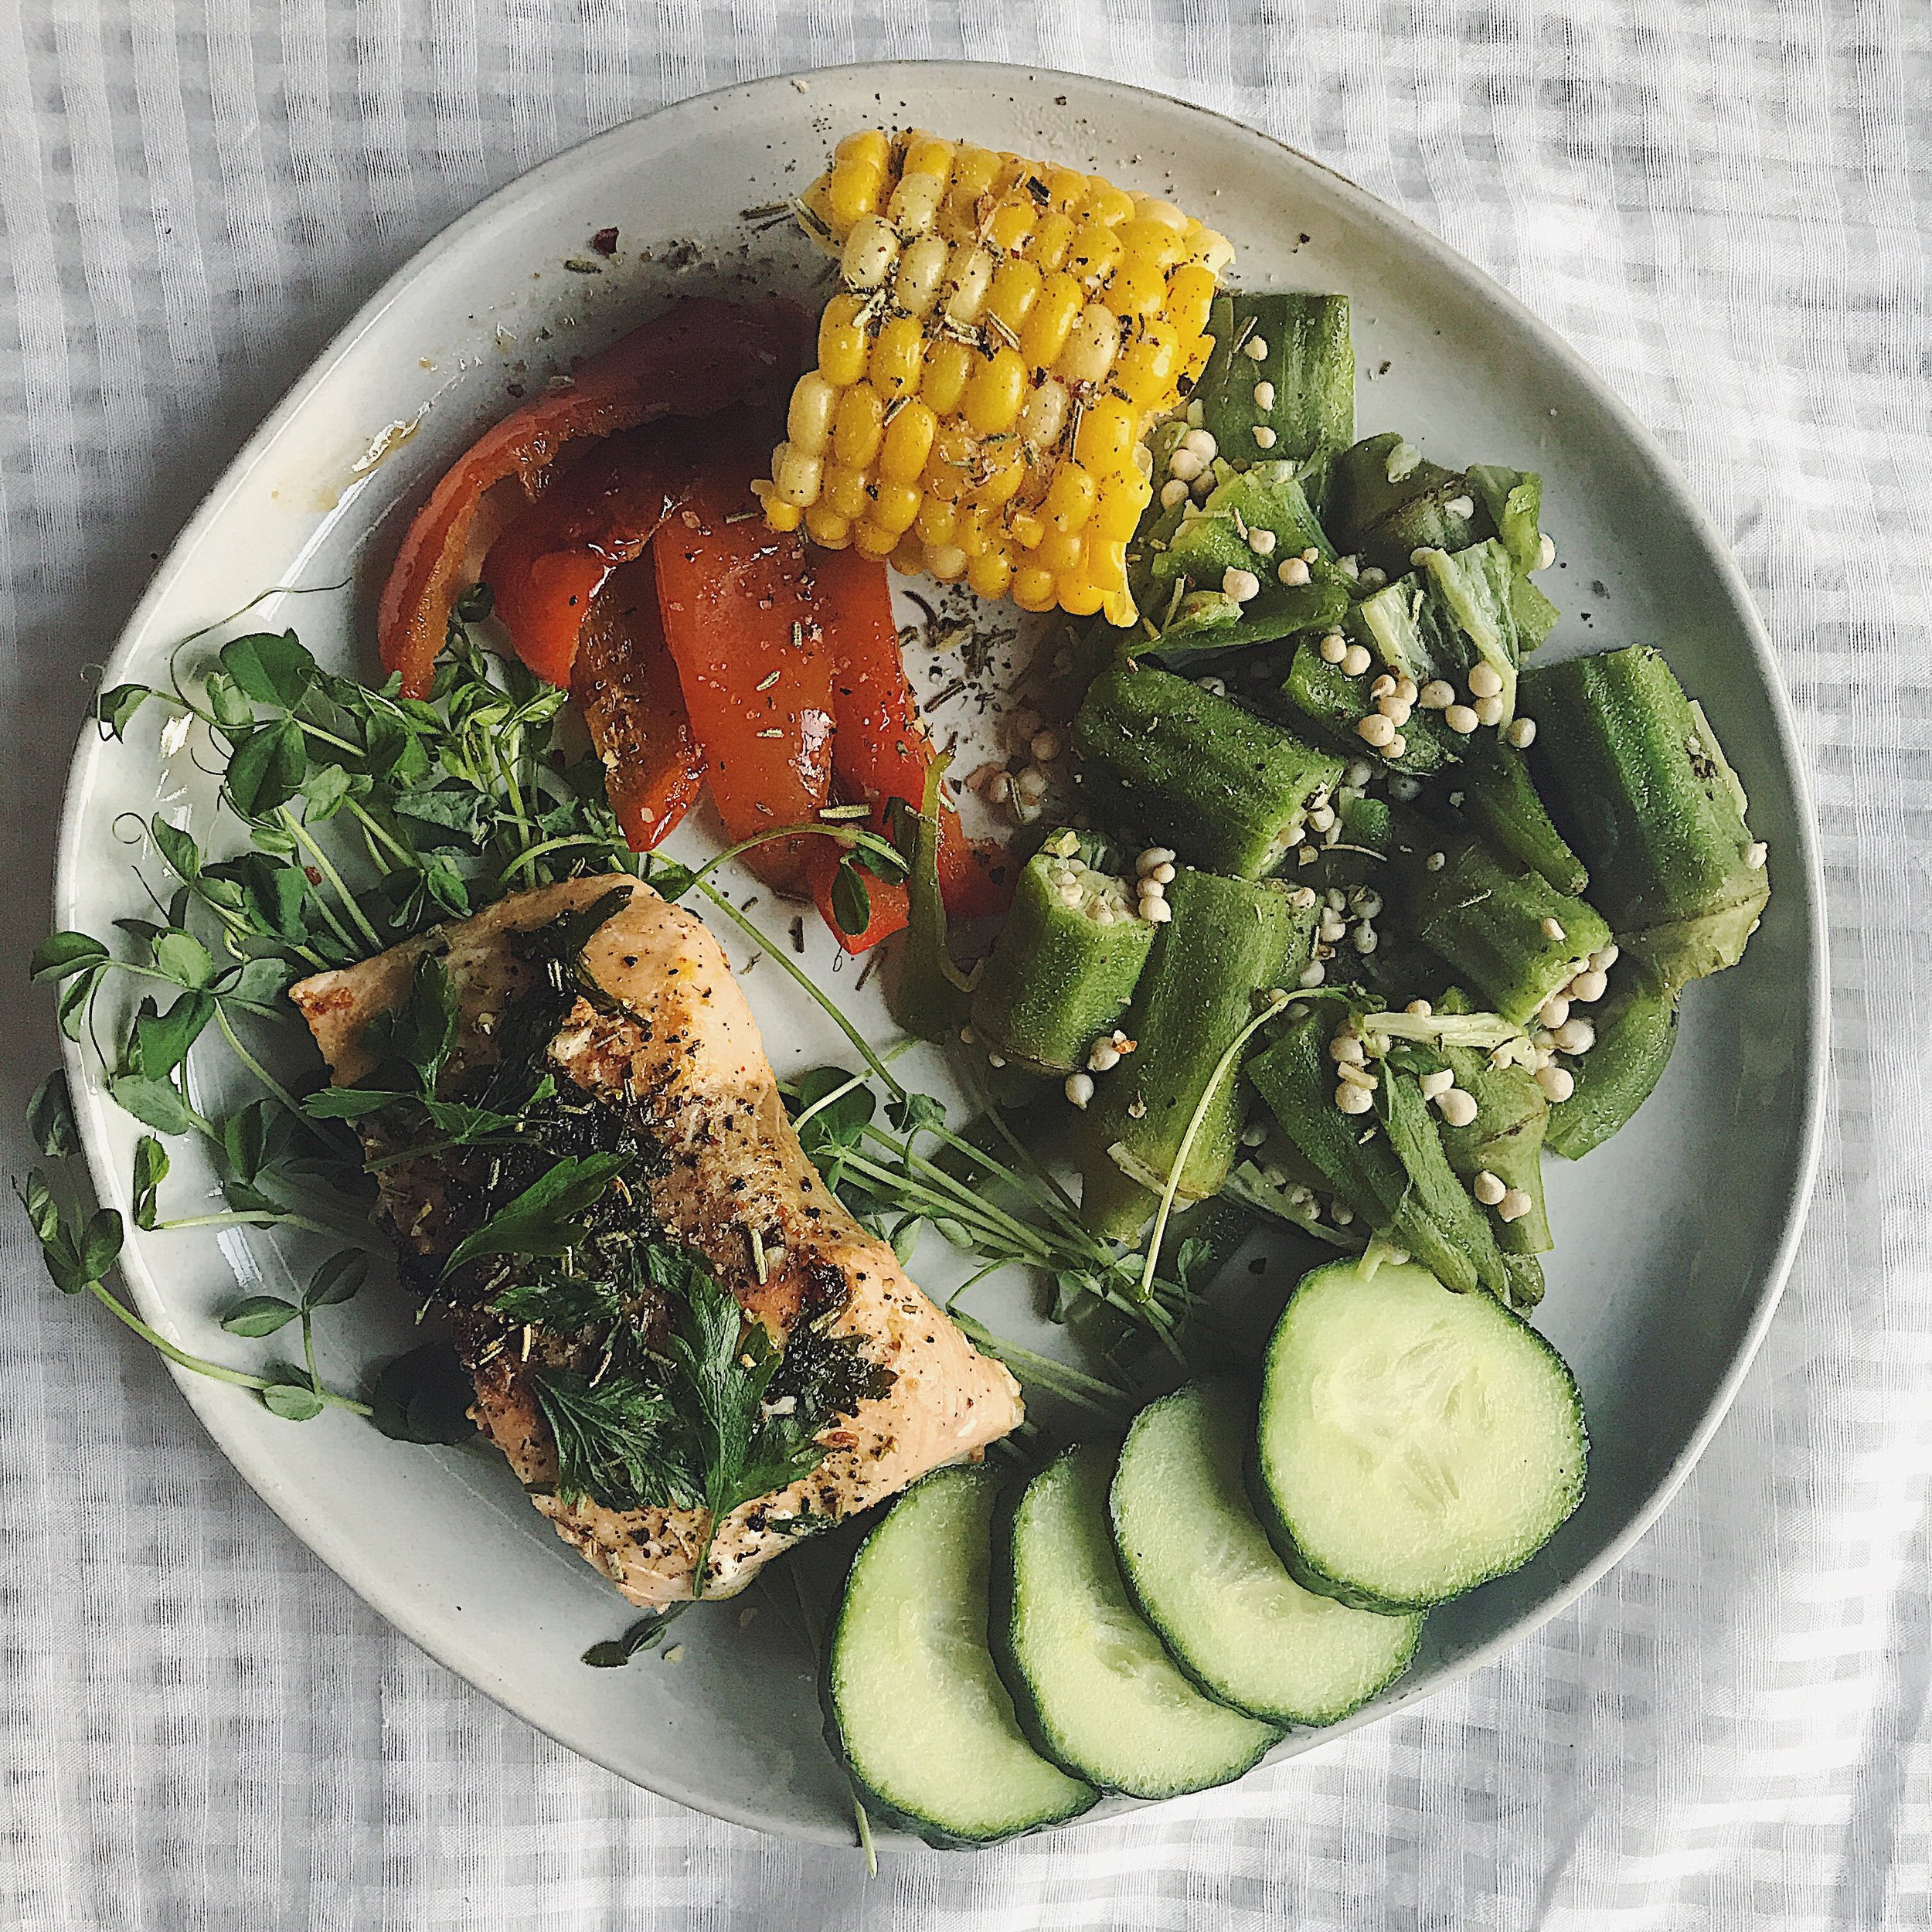 Foods to add in :Quinoa, corn, asparagus, red bell peppers, brussels sprouts, endive, okra, spinach, coconut, raspberries, strawberries, lentils, almonds and pistachios, lamb, salmon, tuna, dark chocolate (yes), coffee, turmeric - (Refer to Woman Code for more!)